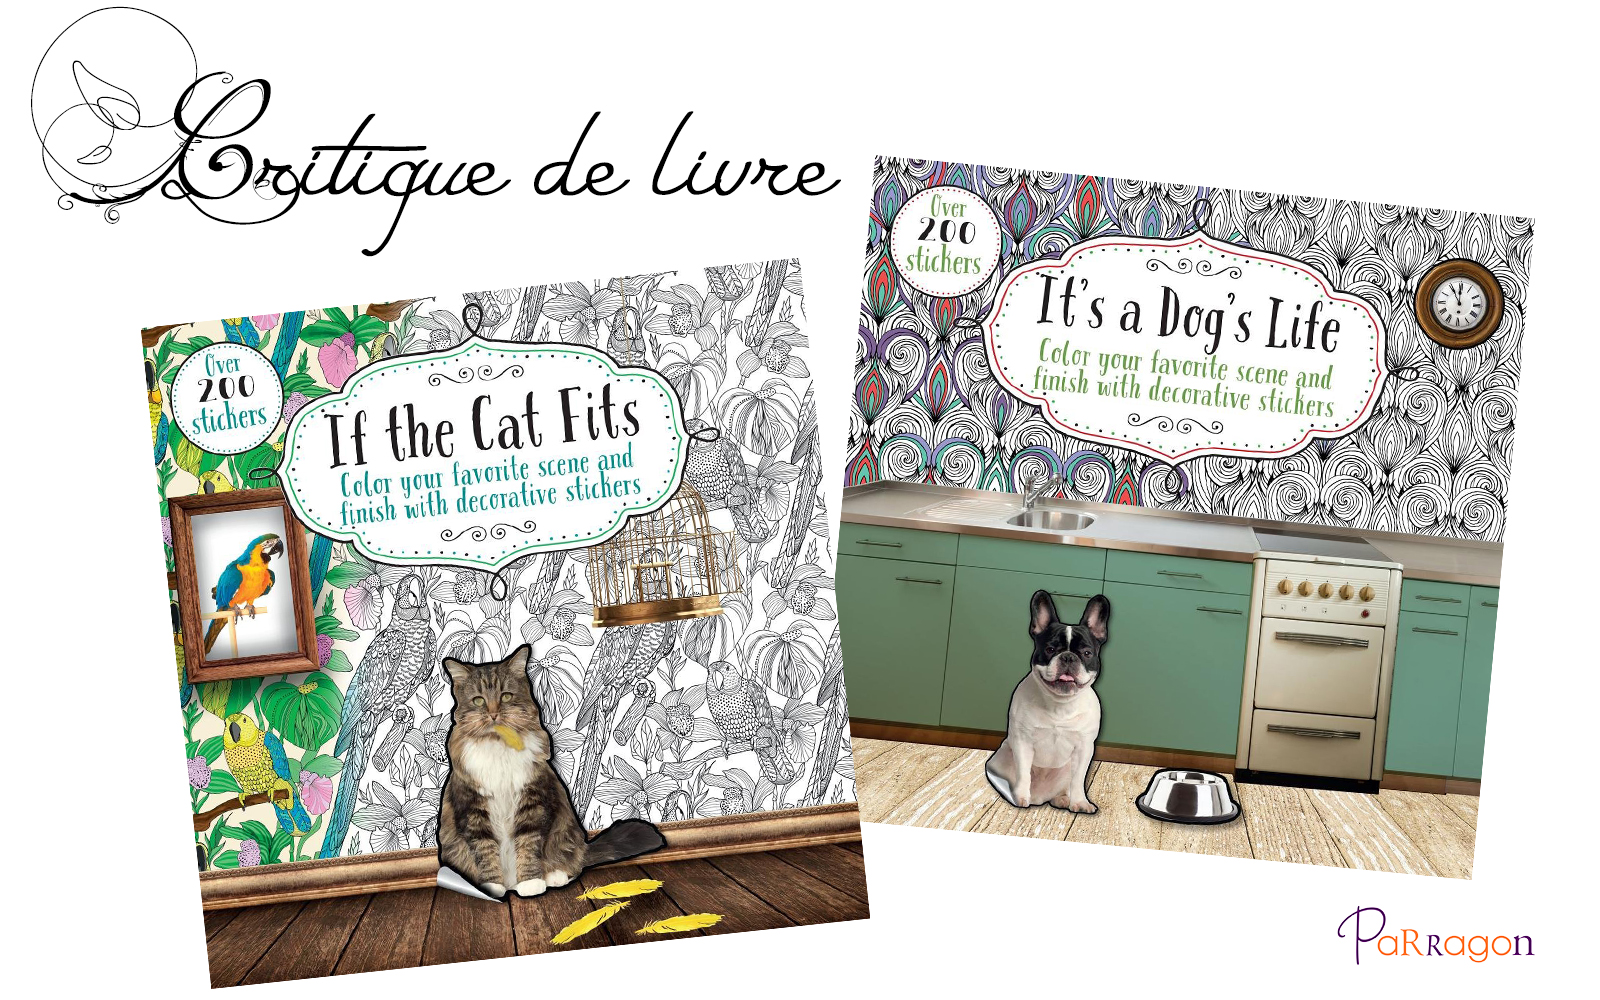 Critique des livres If the cat fits et It's a dog's life